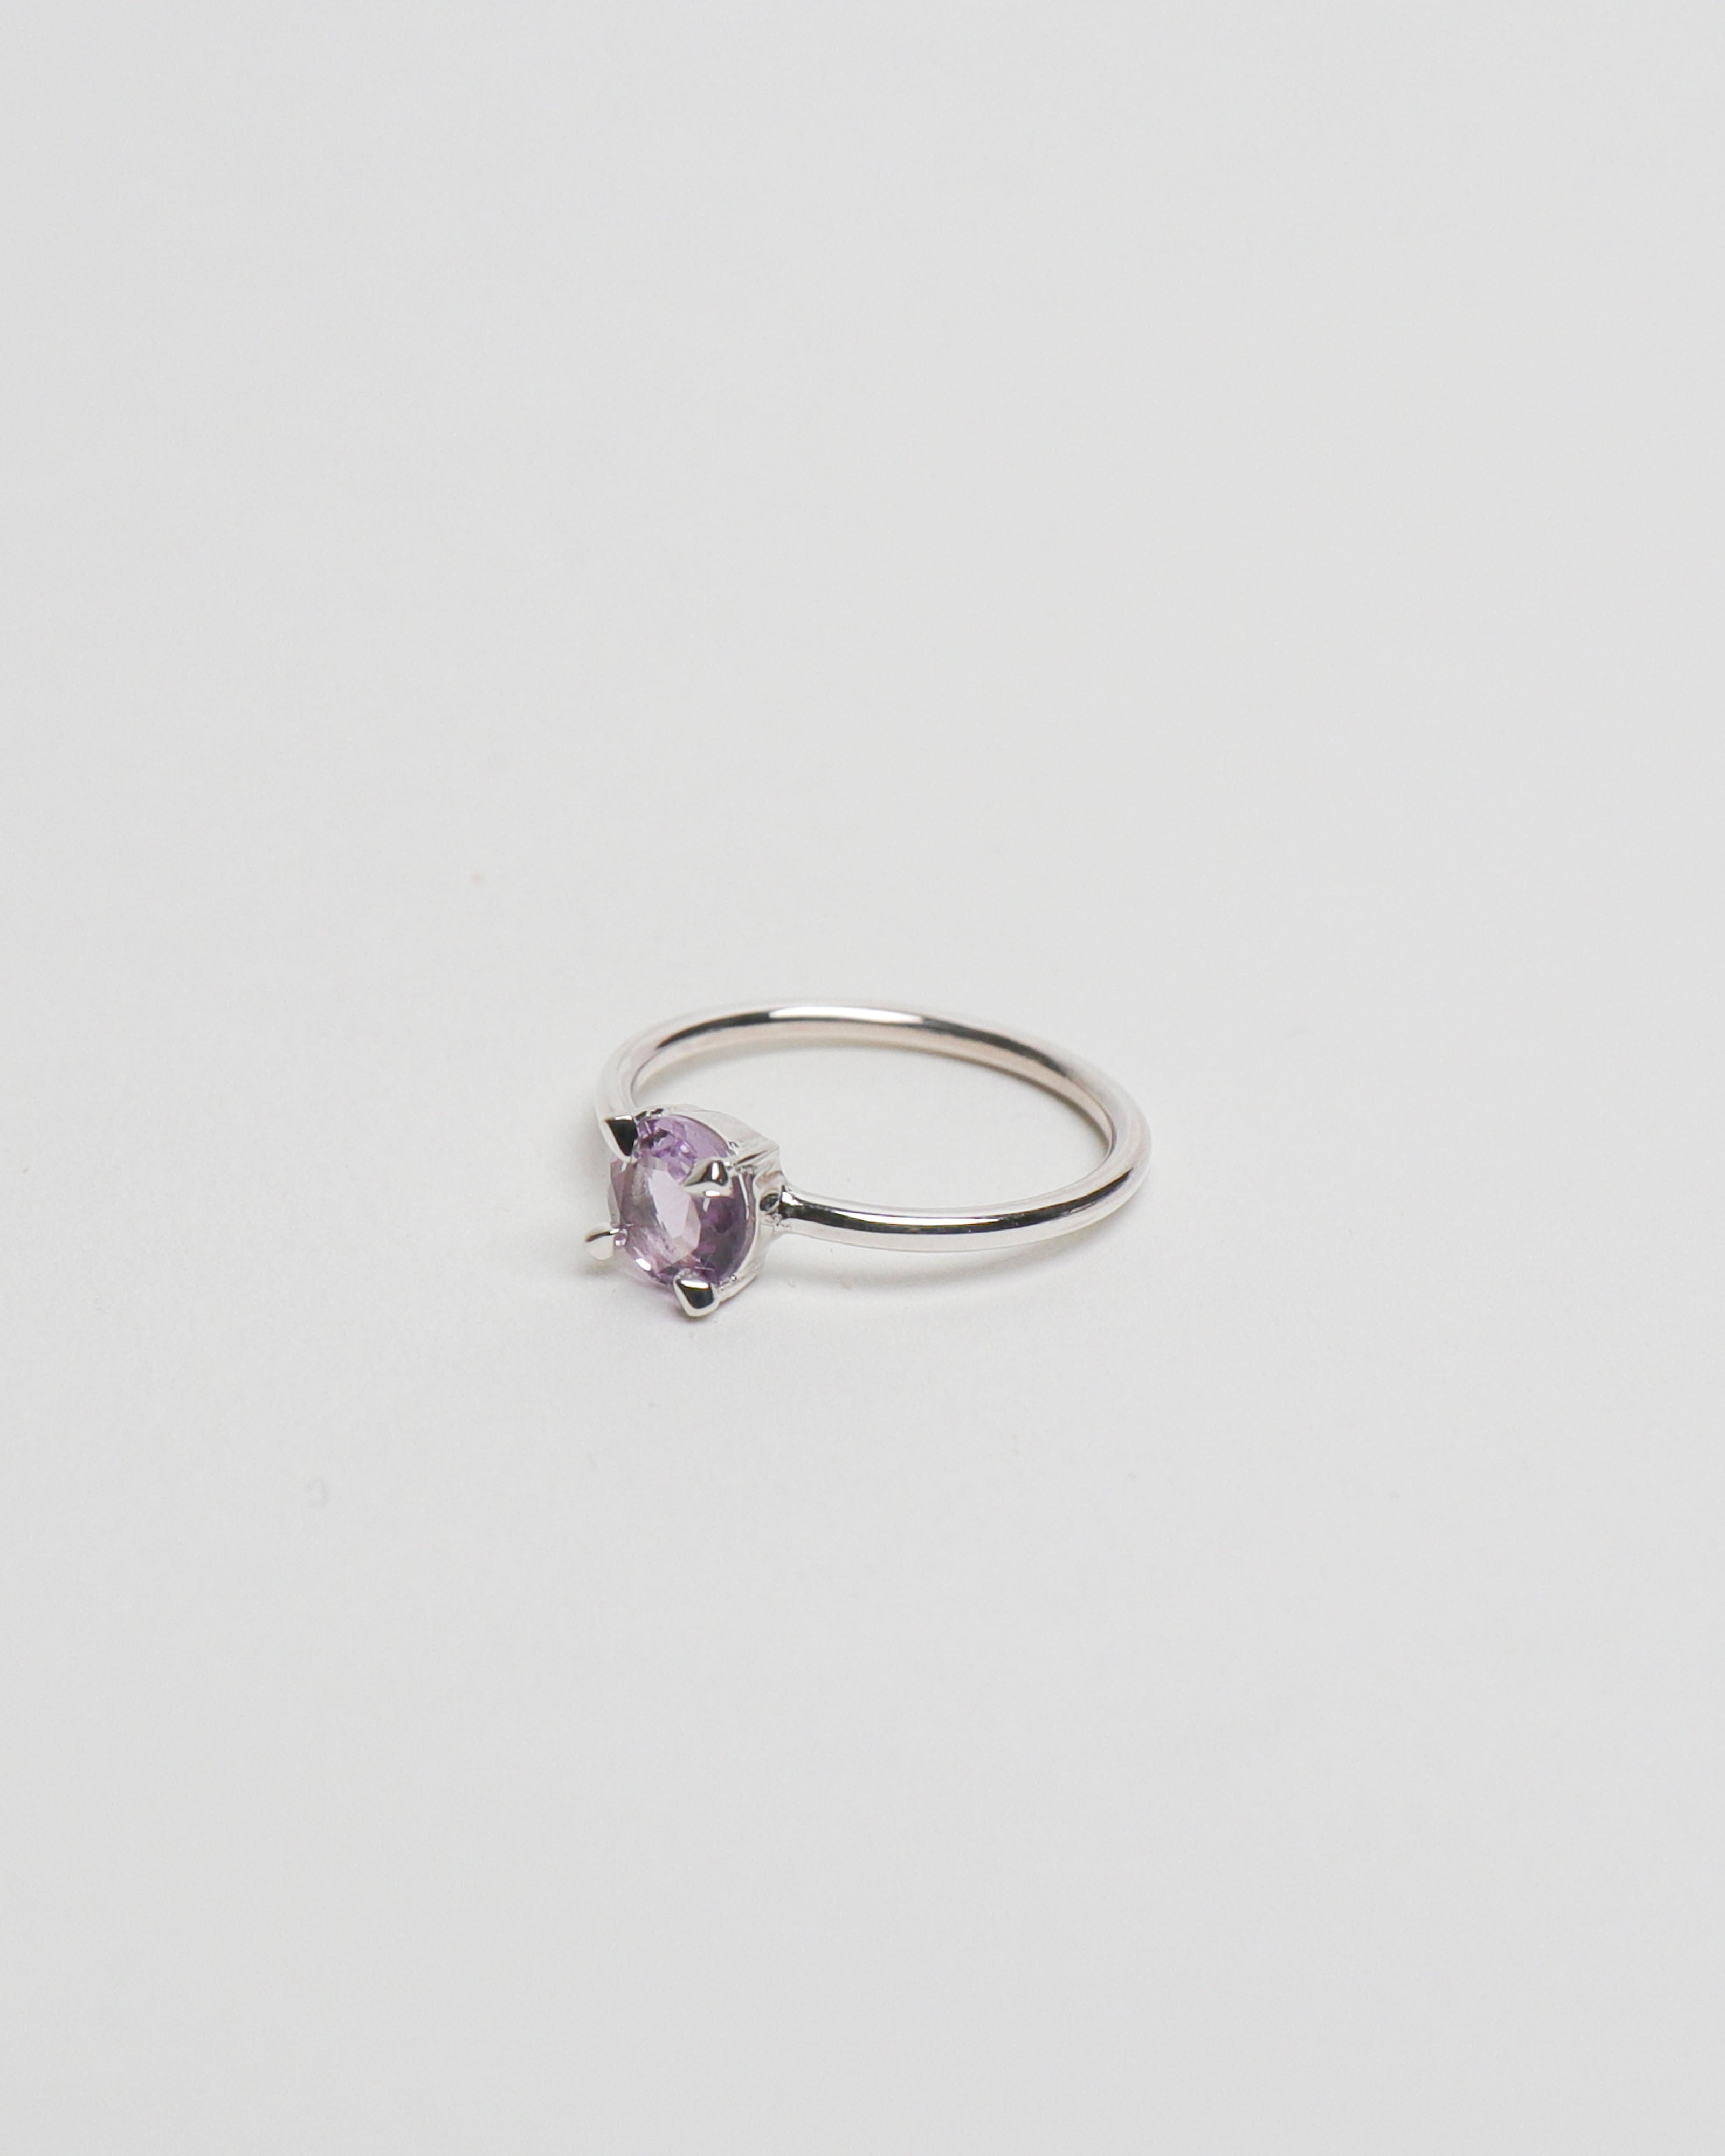 6mm Round Amethyst Ring